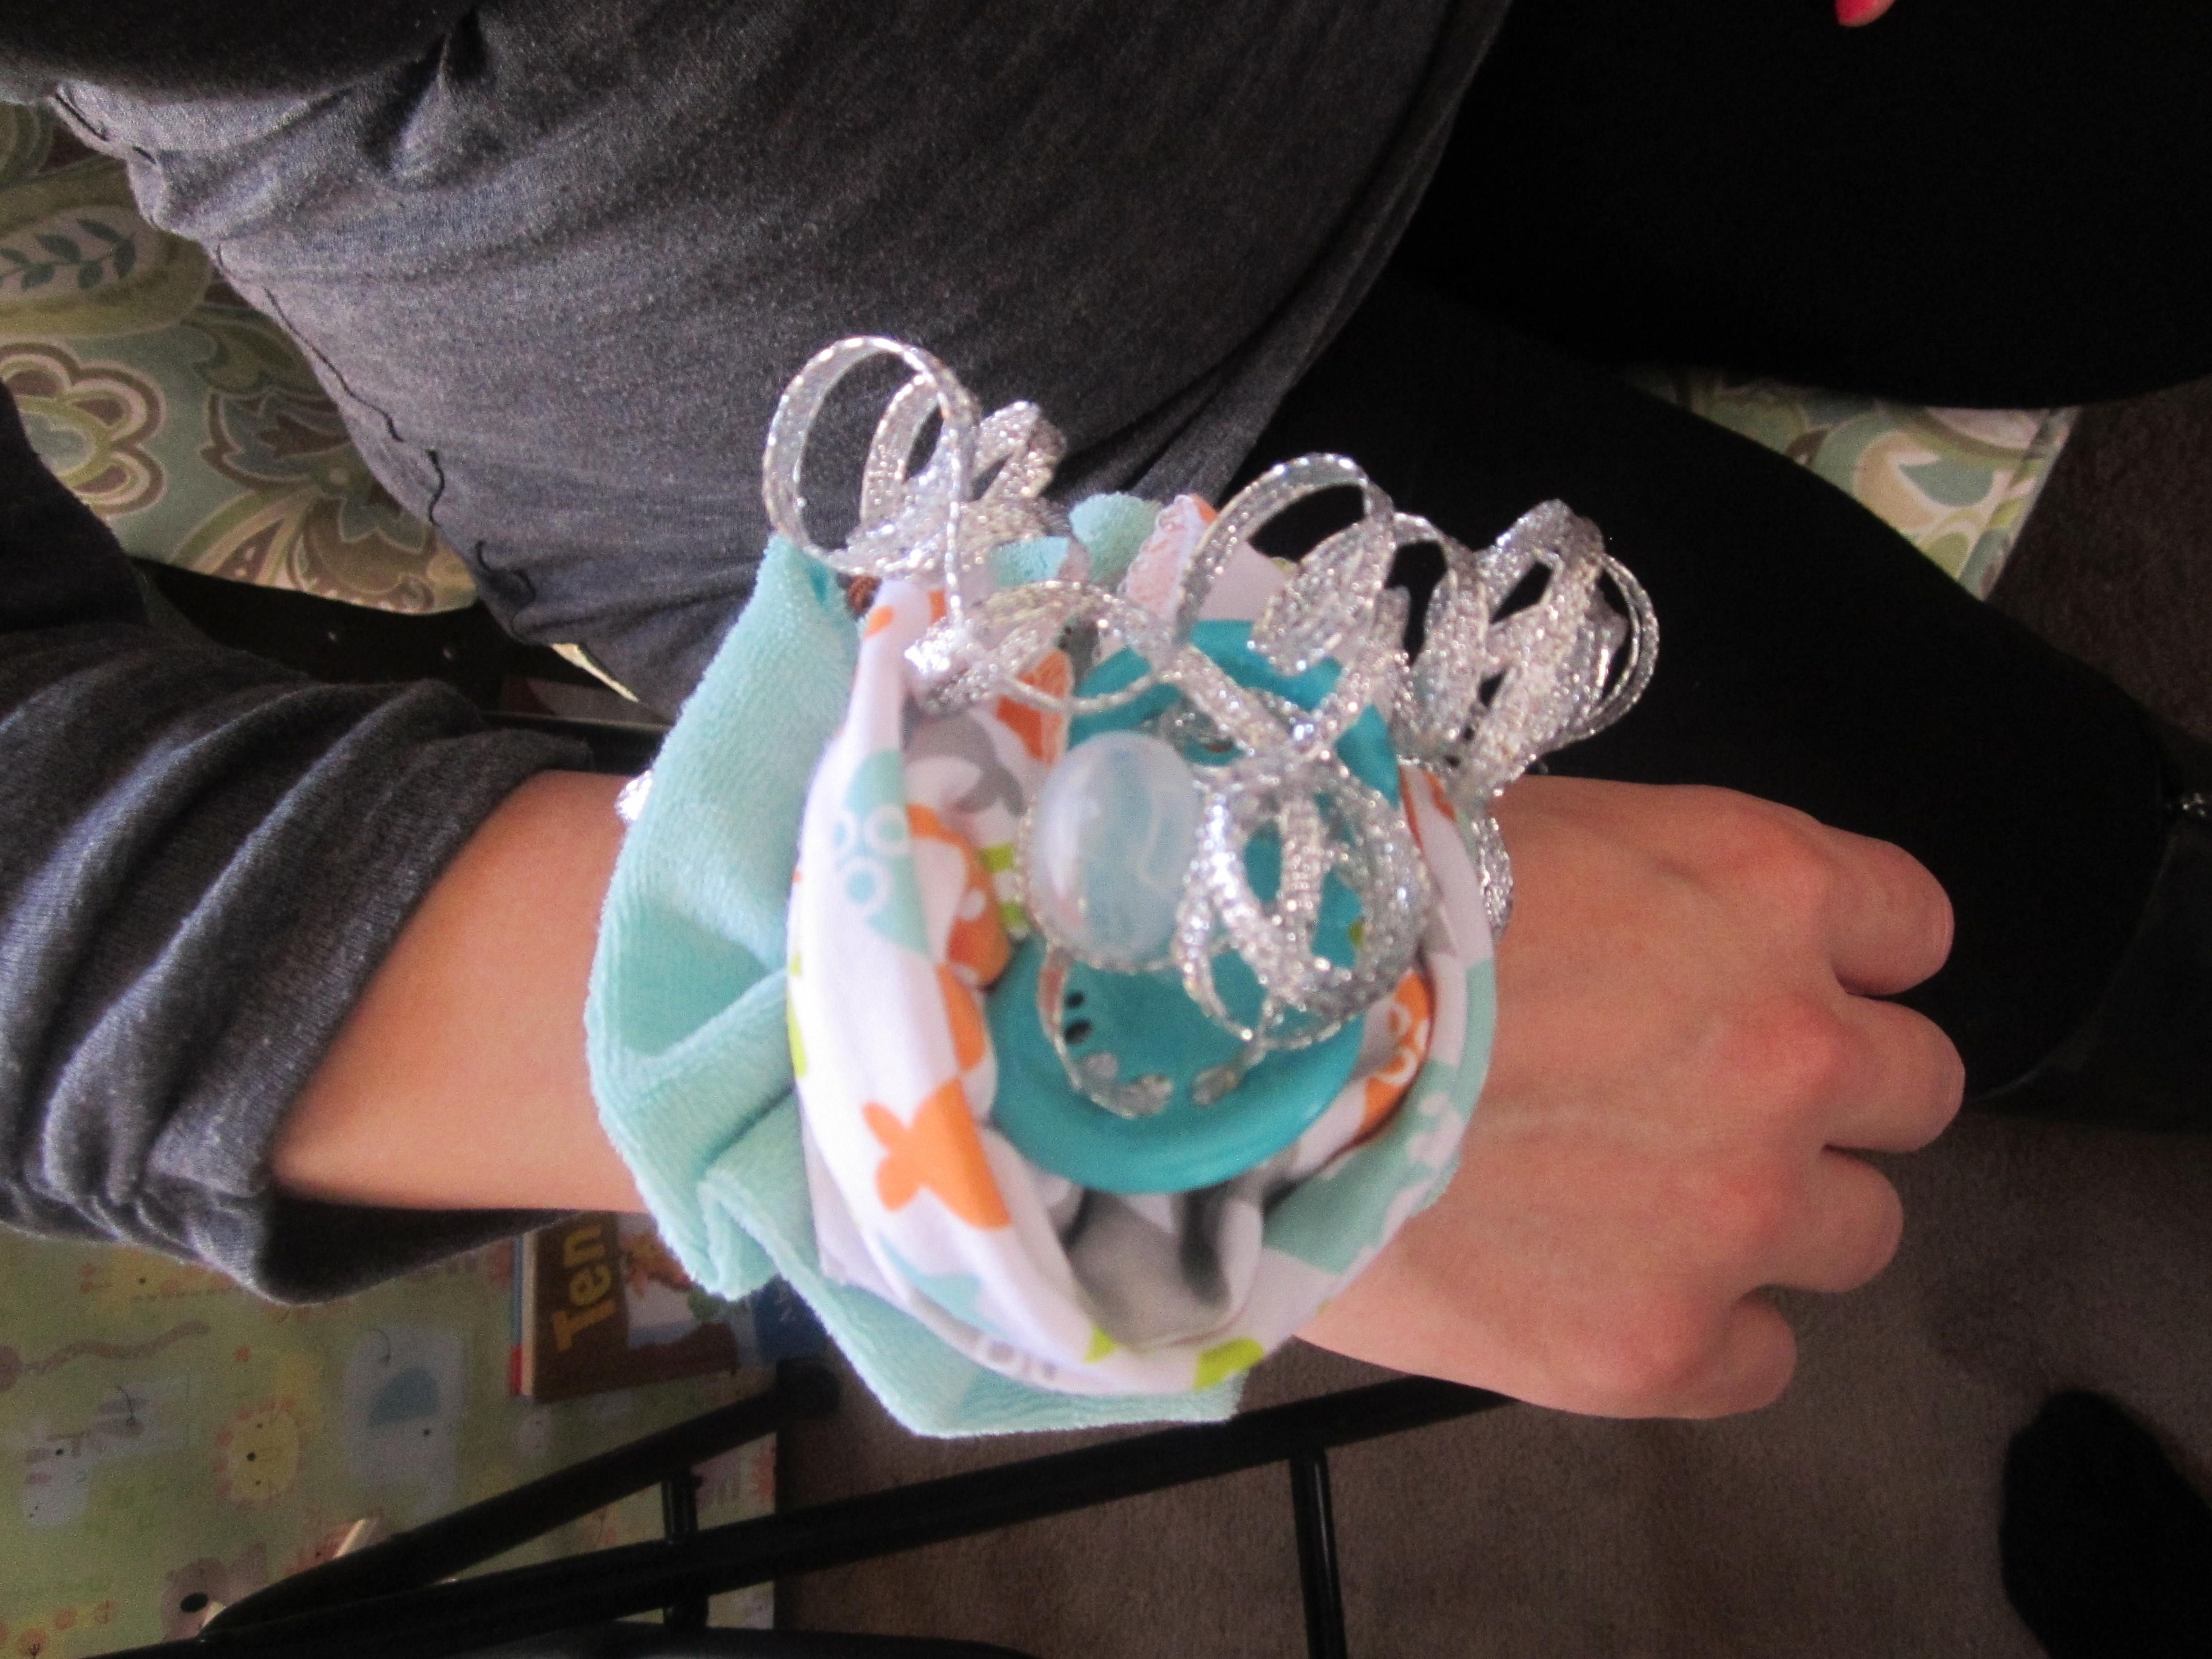 Wrist Corsage For Baby Shower Using Pacifier 2 Baby Washcloths